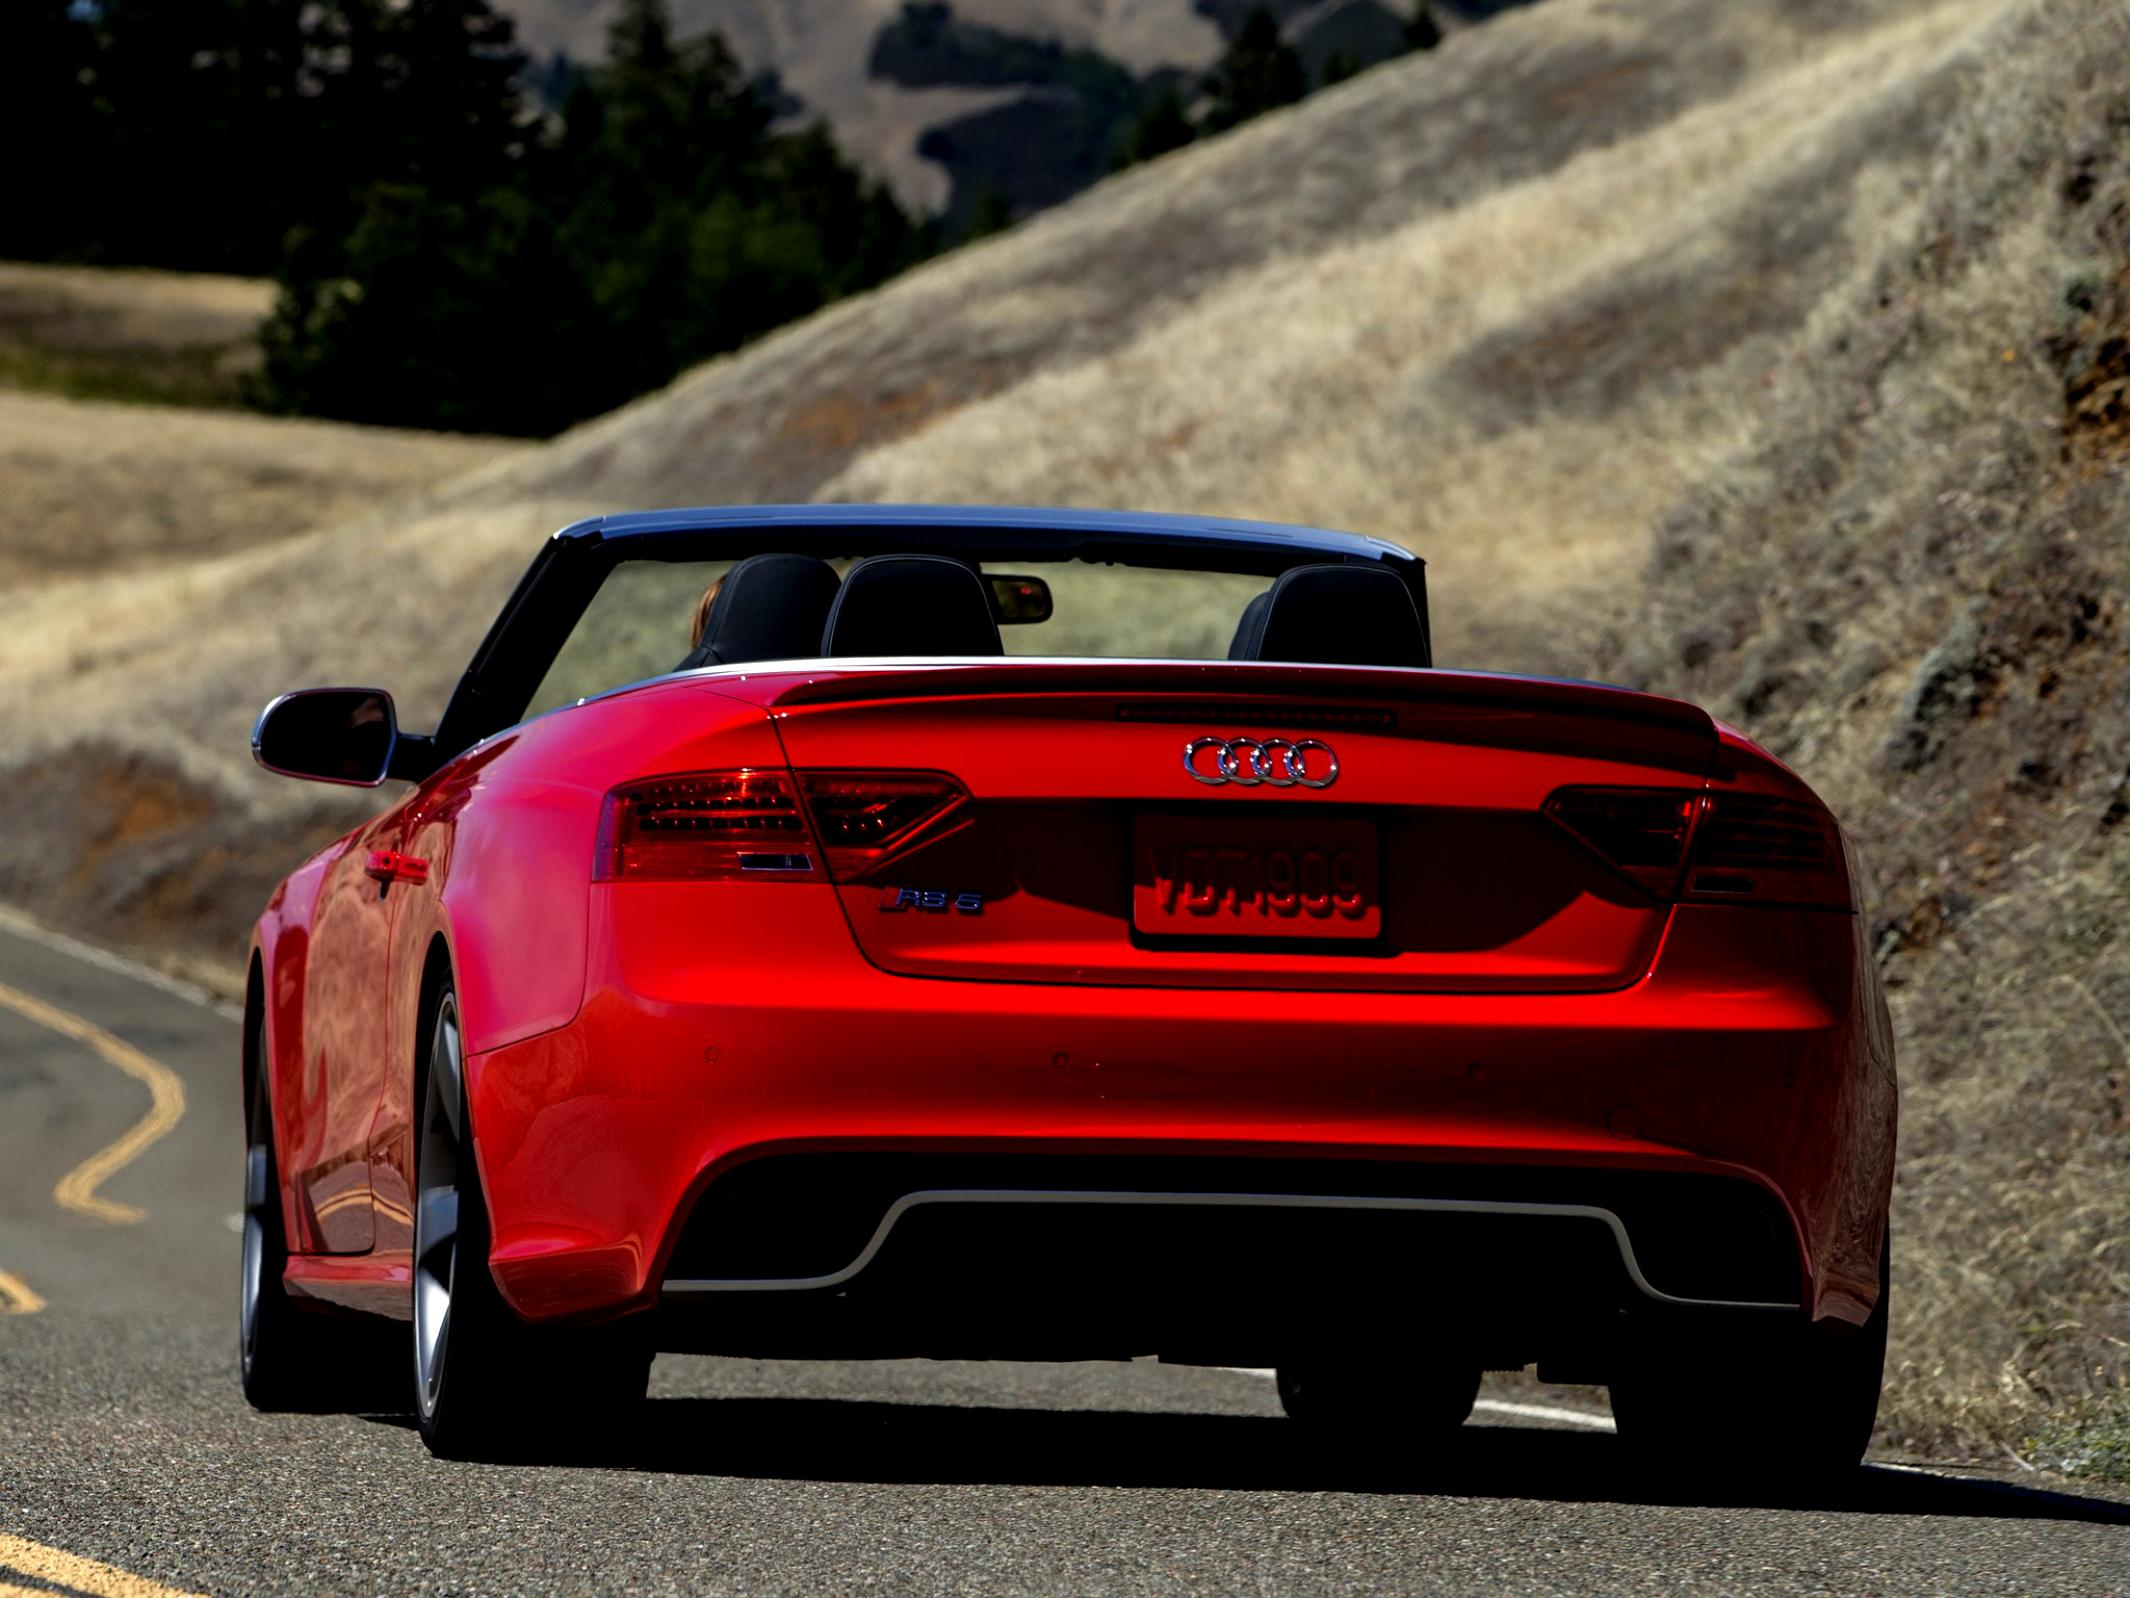 Audi RS5 Cabriolet 2013 #78